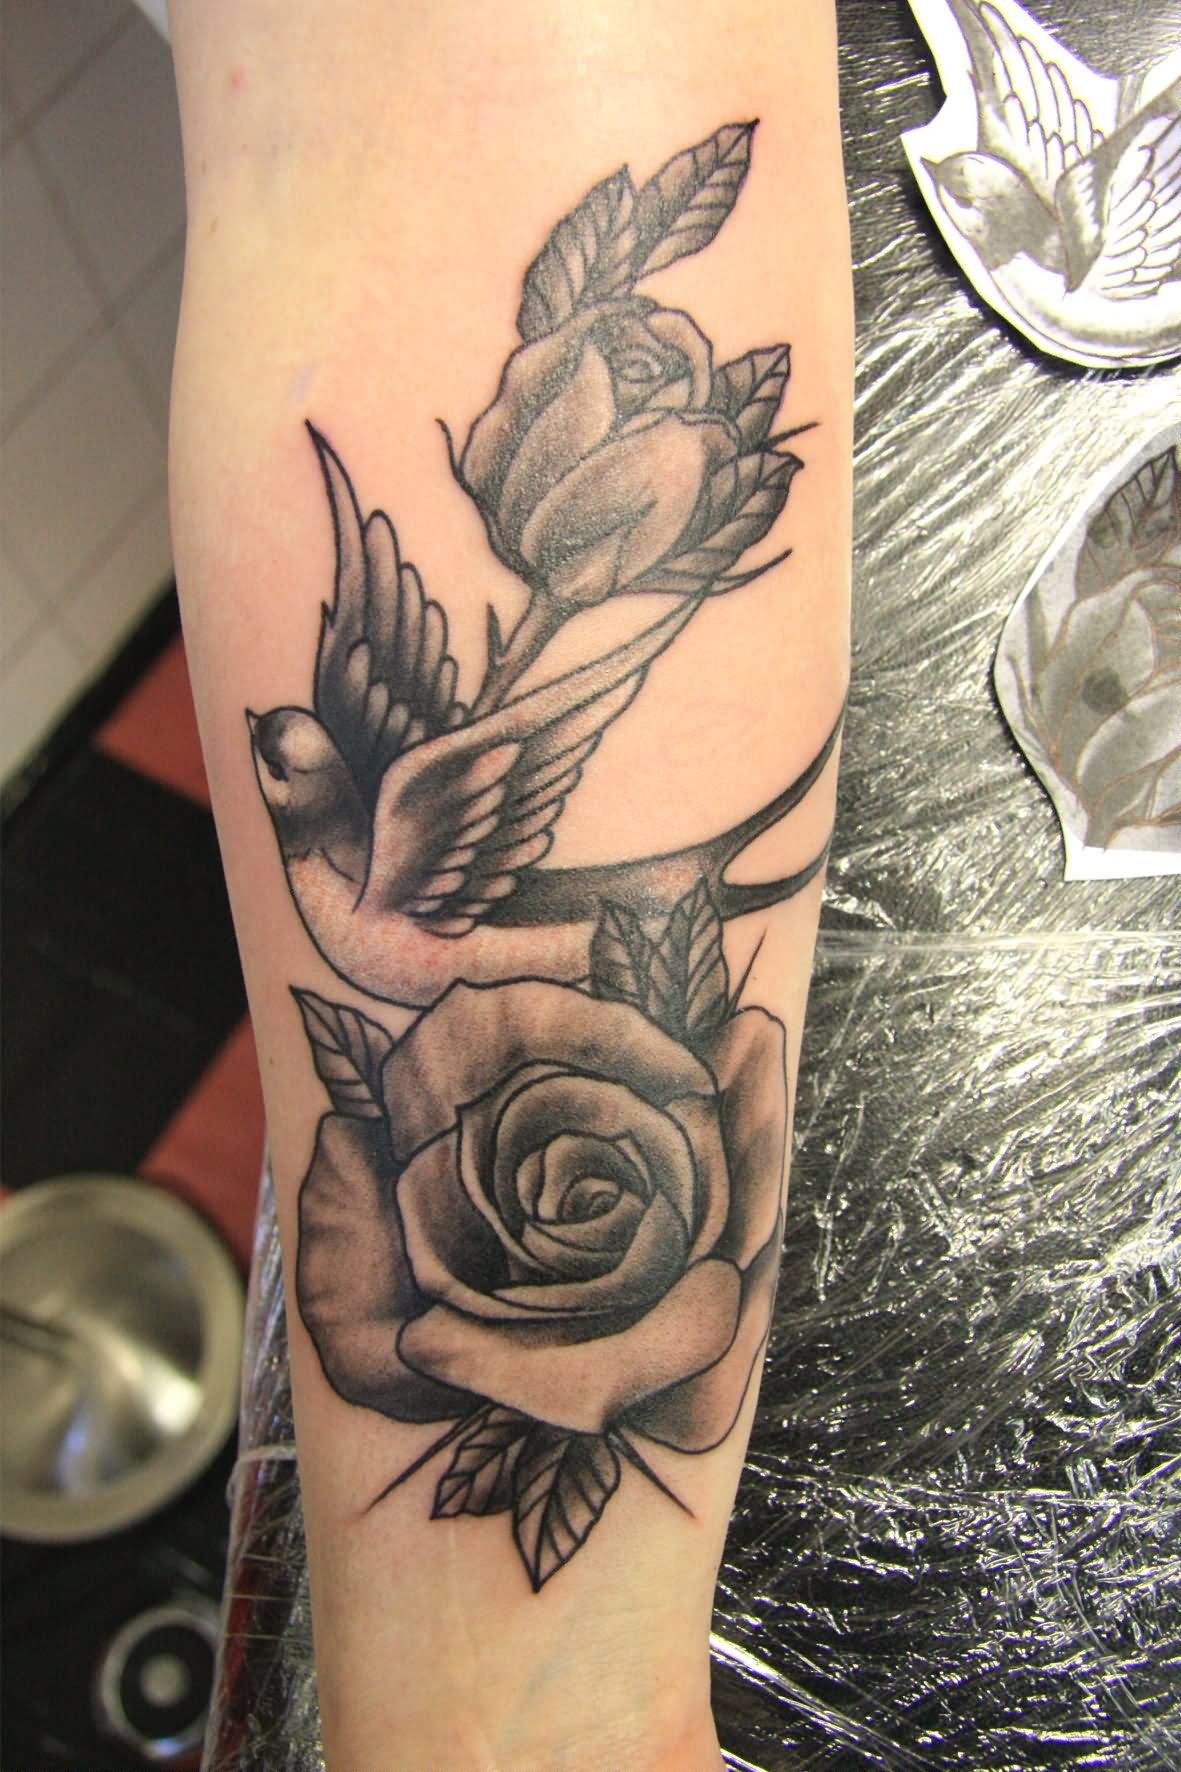 Rose Tattoos Flower: 51+ Excellent Rose & Swallow Tattoos & Designs With Meanings